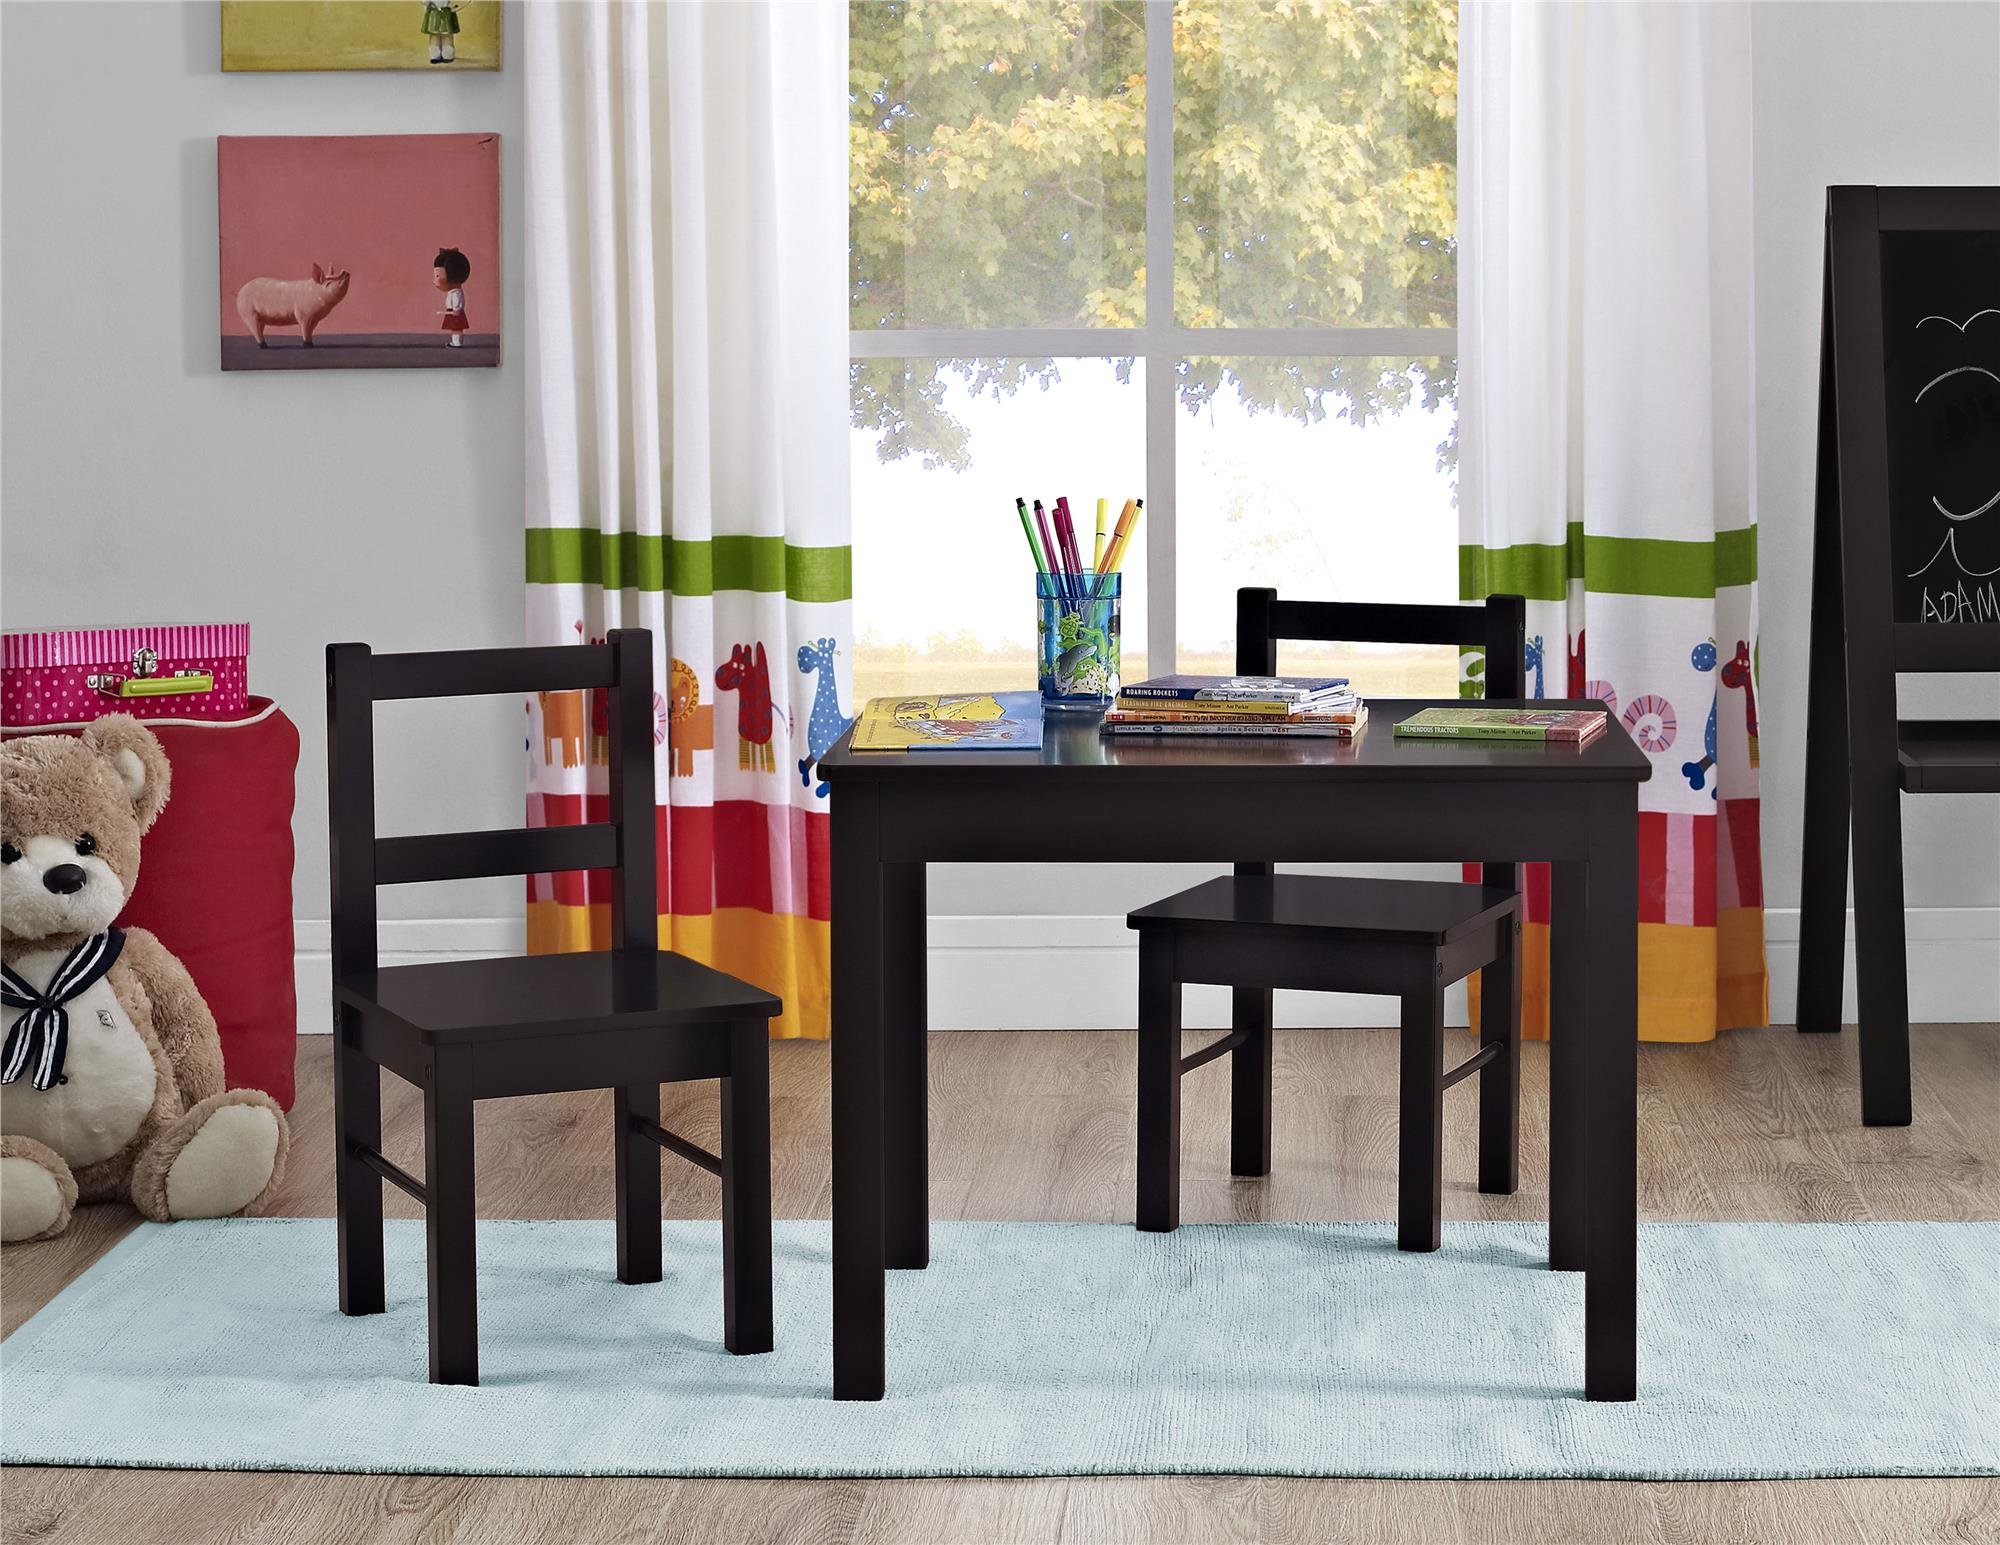 ameriwood home hazel kids table and chairs 3 piece set espresso